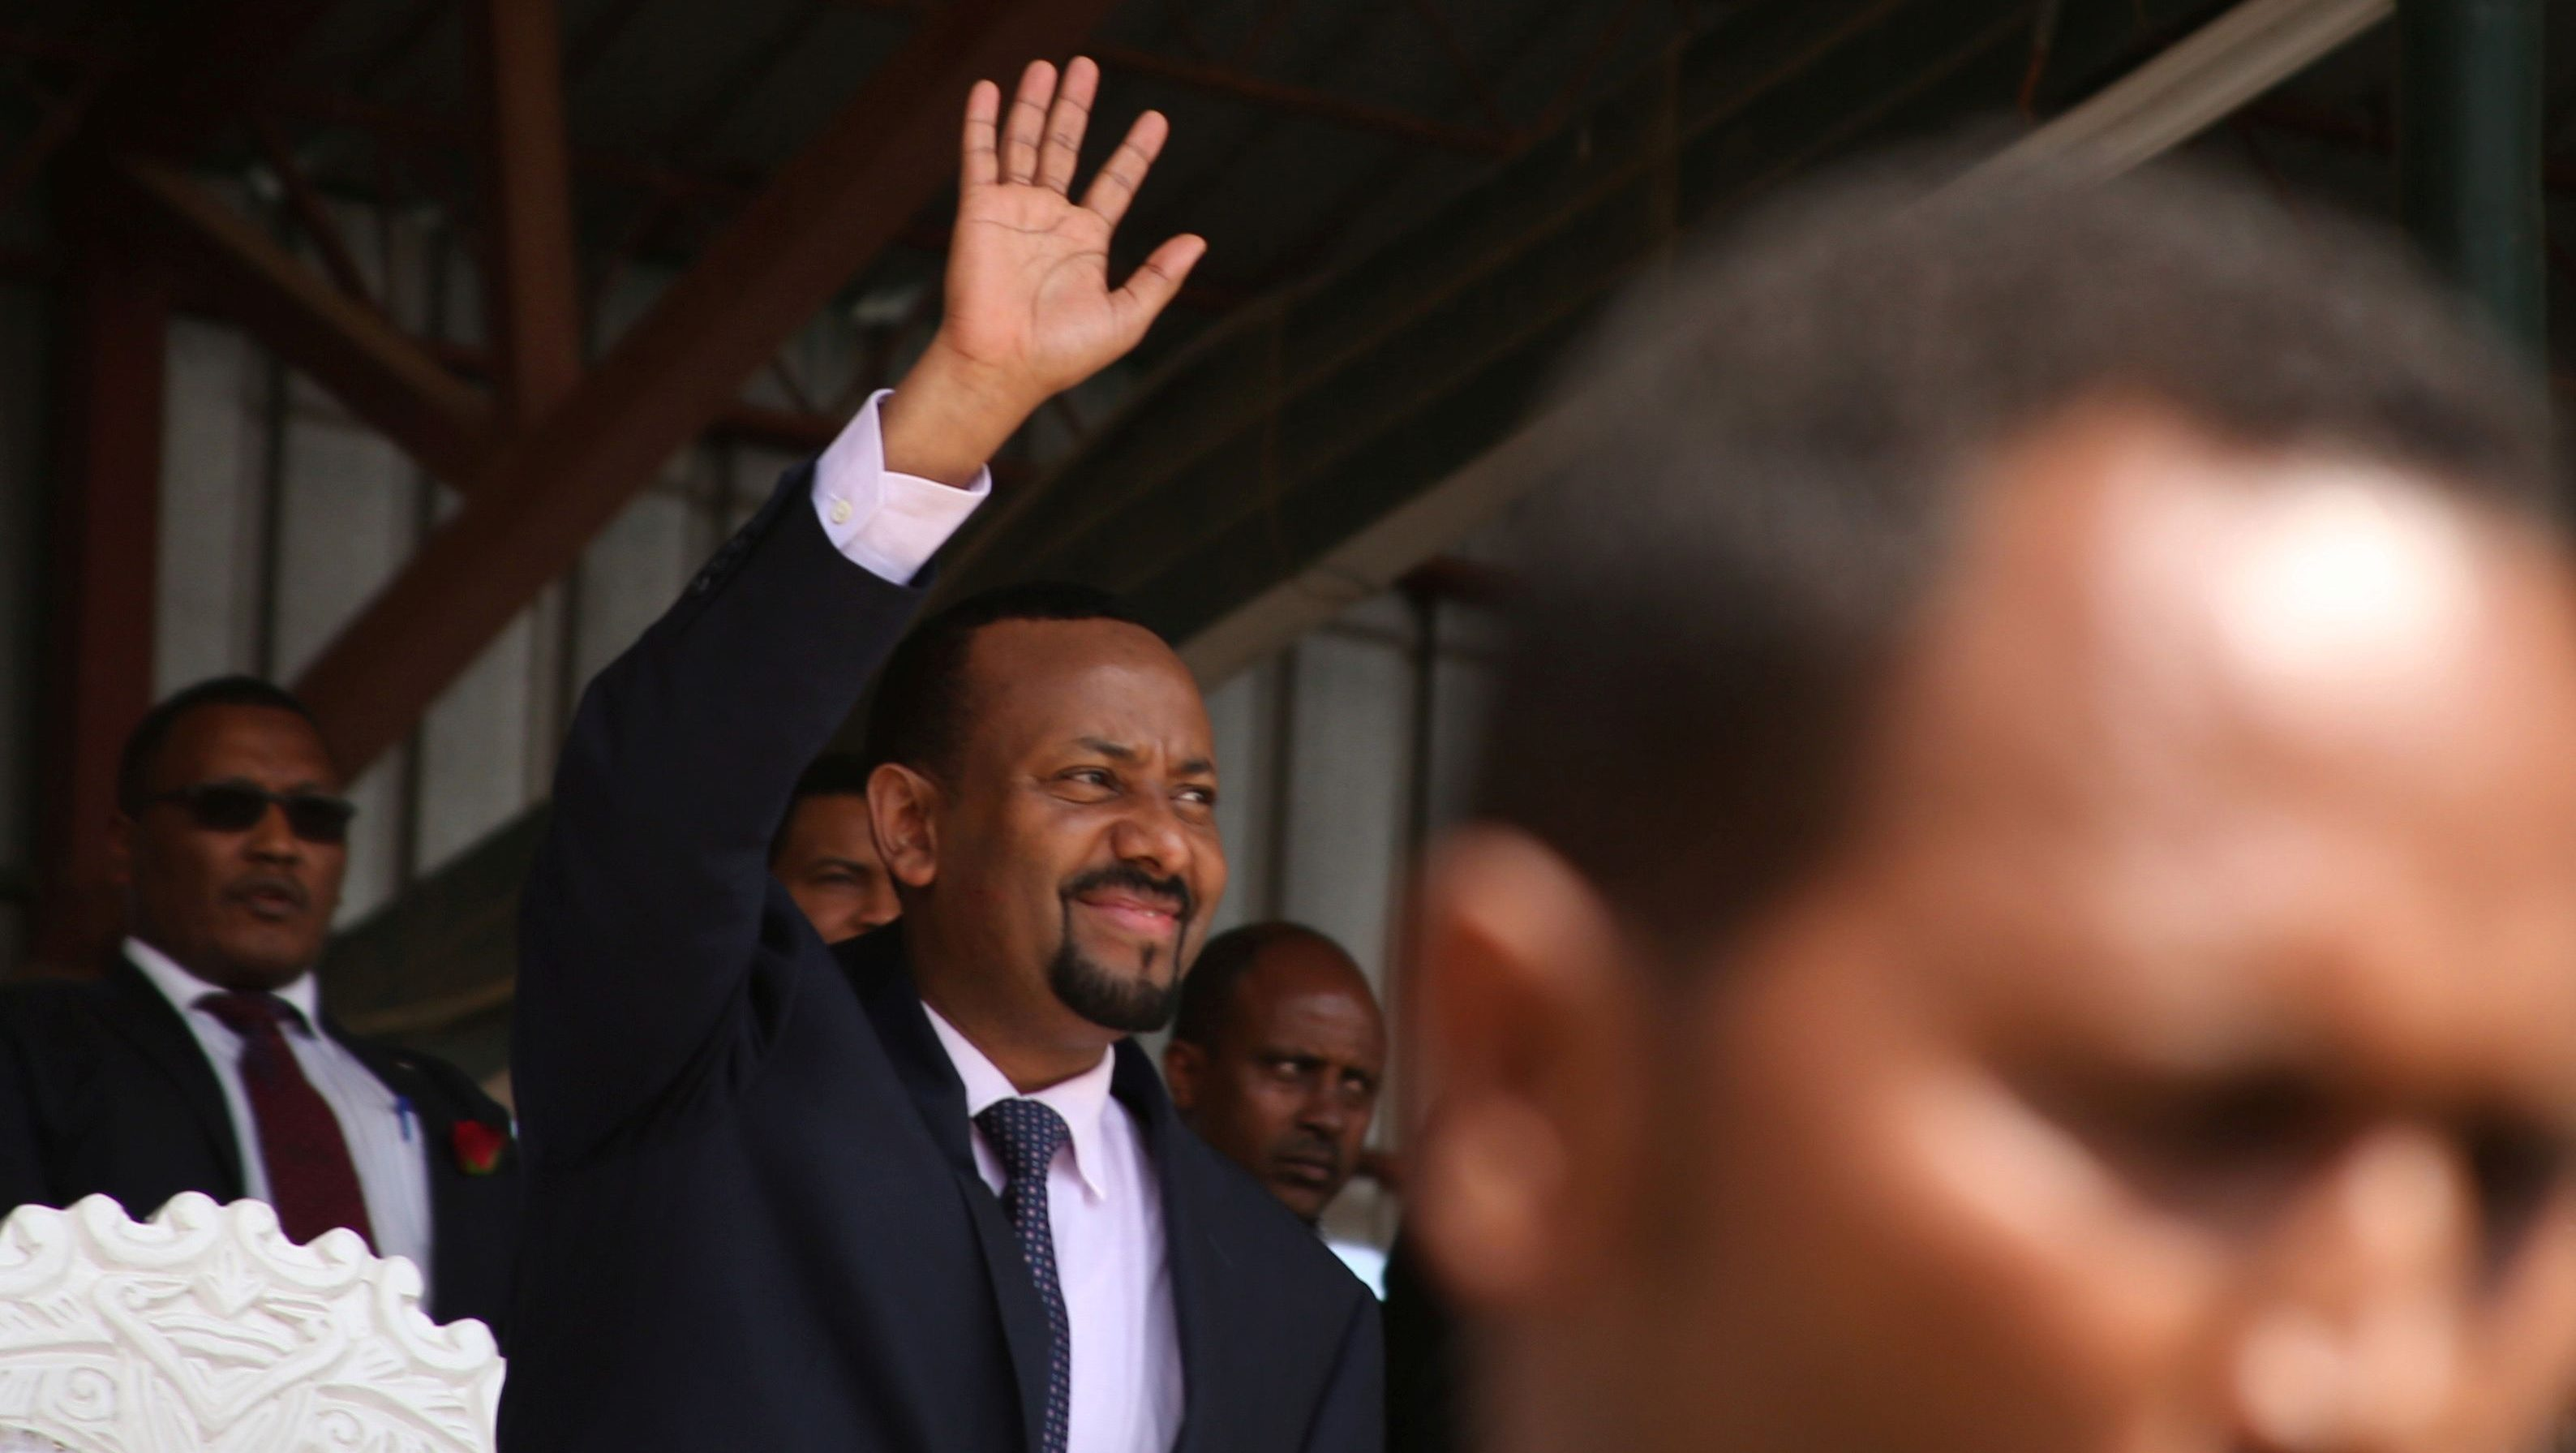 Ethiopia's newly elected prime minister Abiy Ahmed waves to the rally during his visit to Ambo in the Oromiya region, Ethiopia, April 11, 2018.